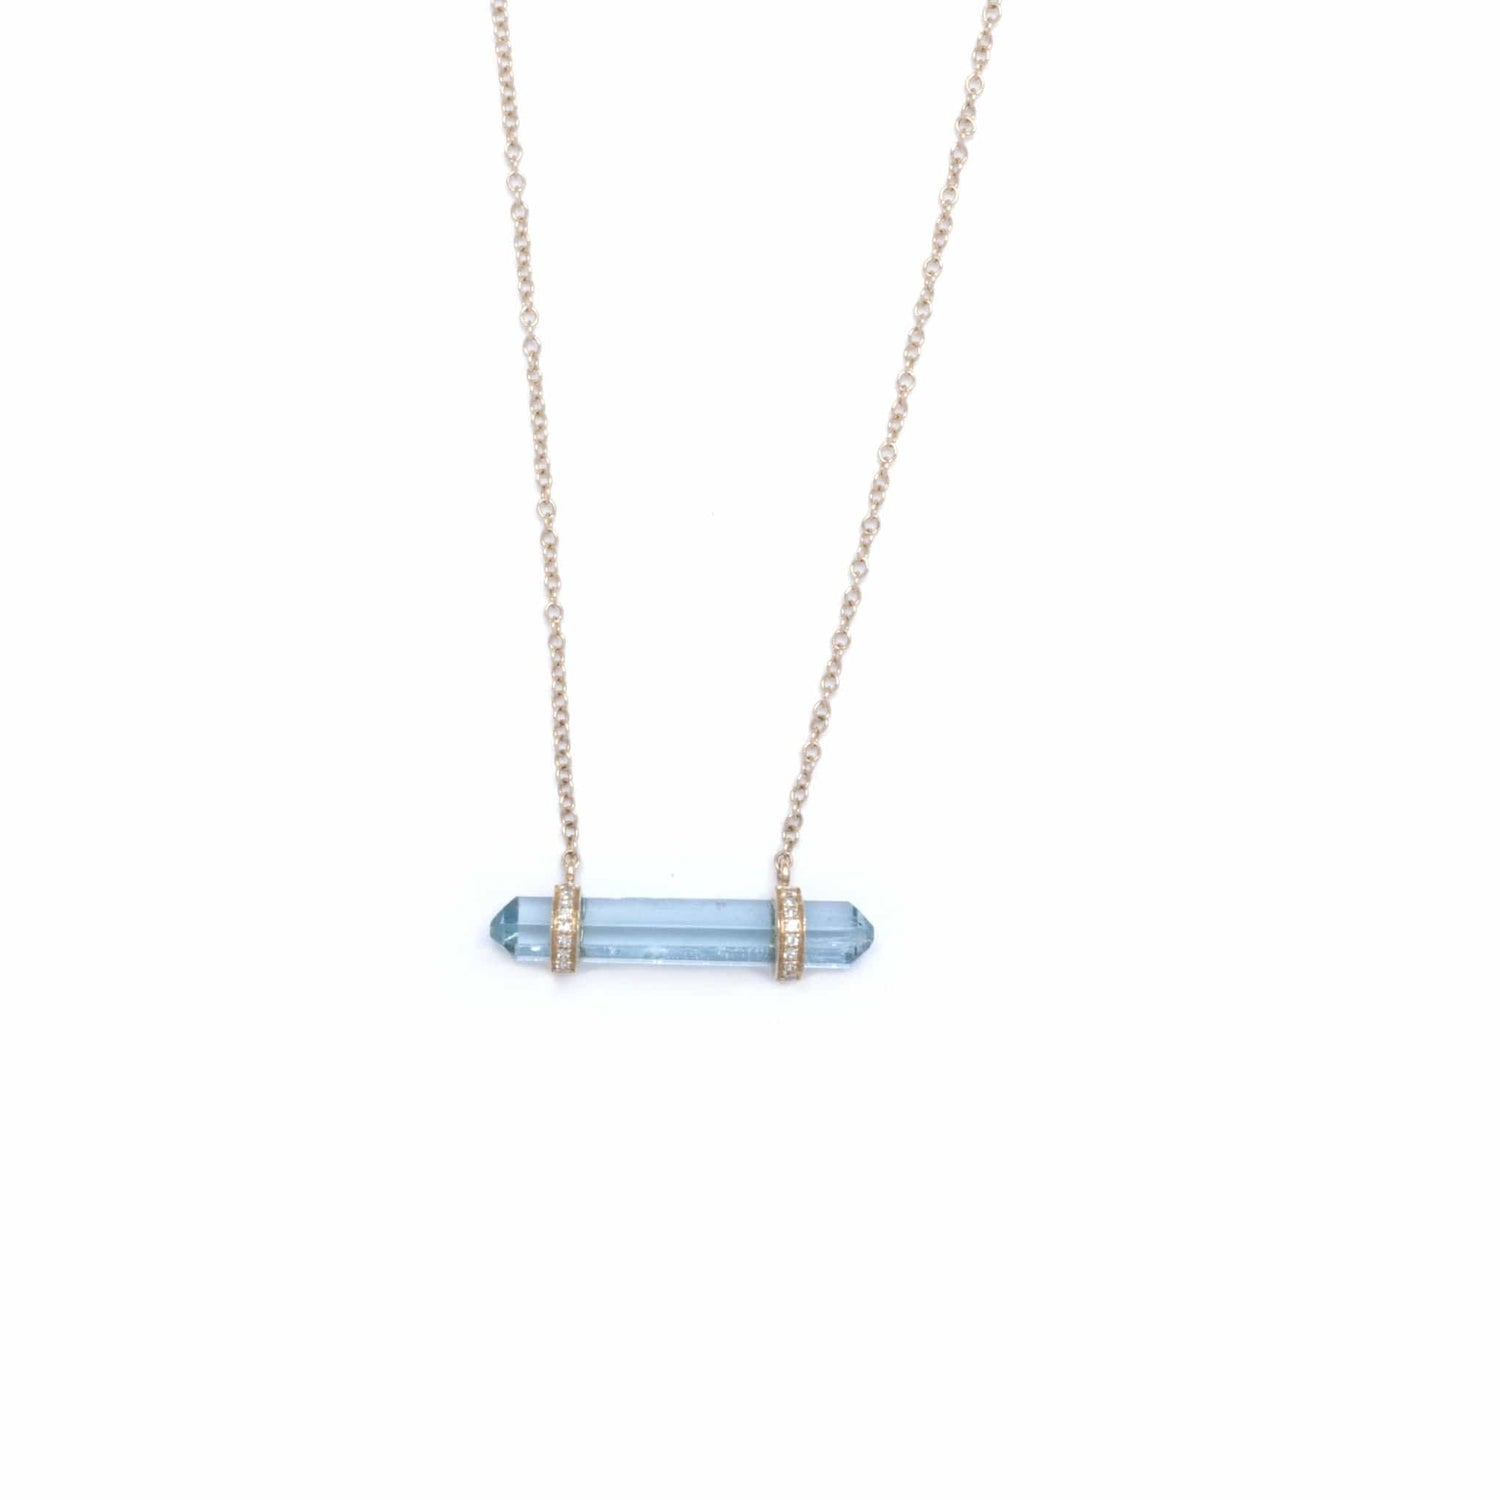 Aquamarine Prism Diamond Necklace - Curated Los Angeles